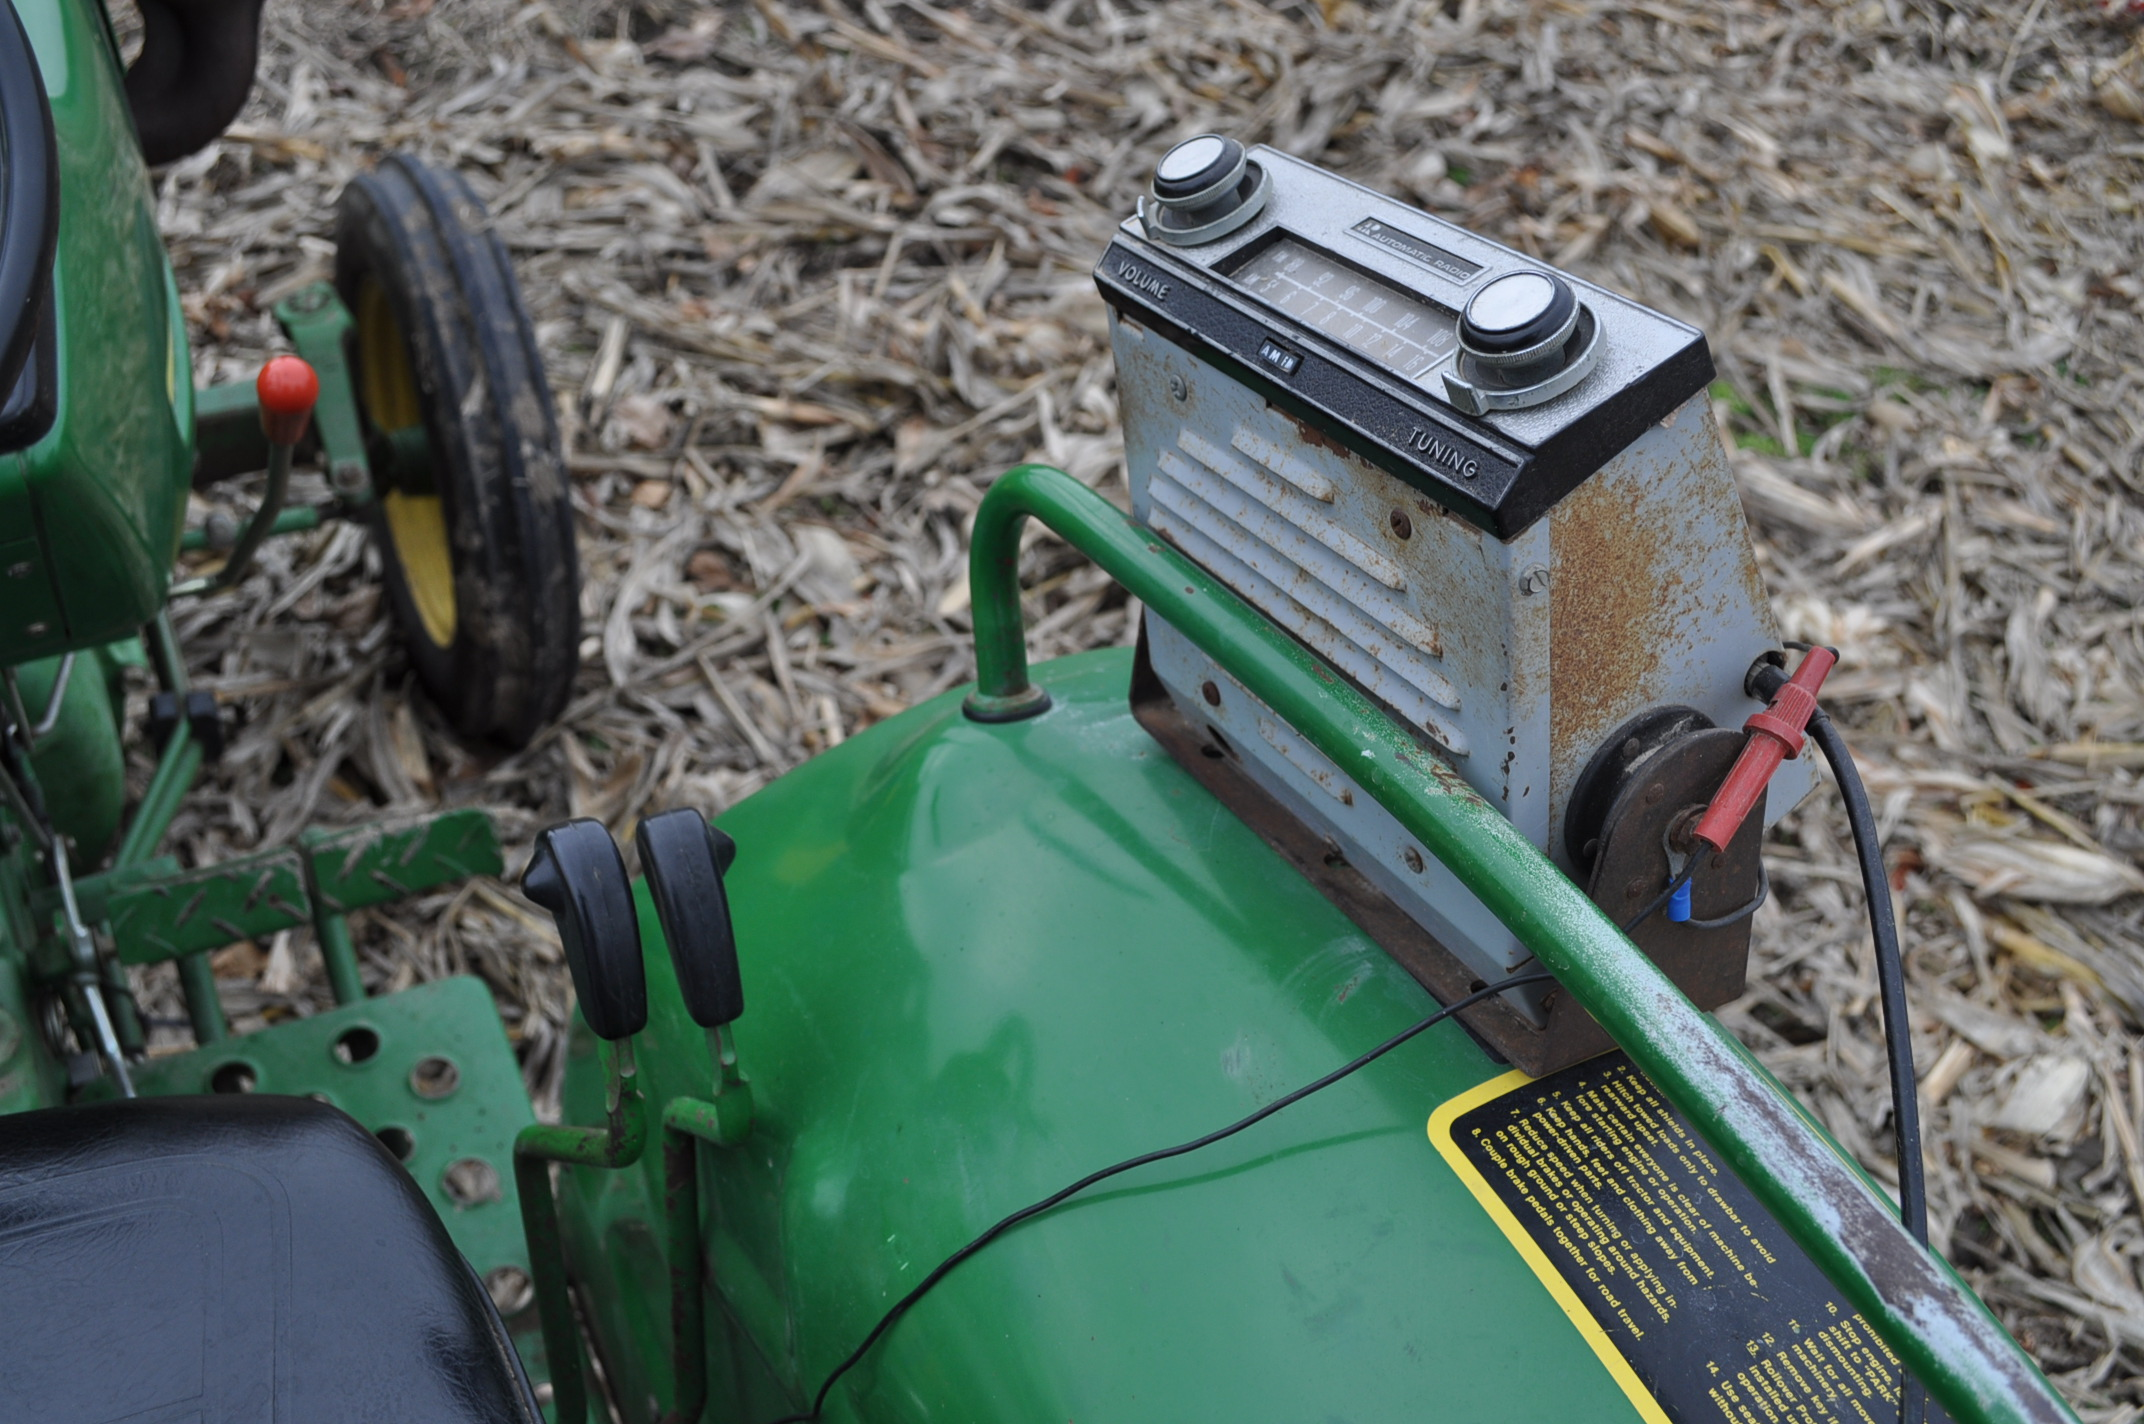 John Deere 850 utility tractor, diesel, 12.4-24 rear, 5.00-16 front, 2 hyd remotes, 3 pt, 540 pto, - Image 13 of 13